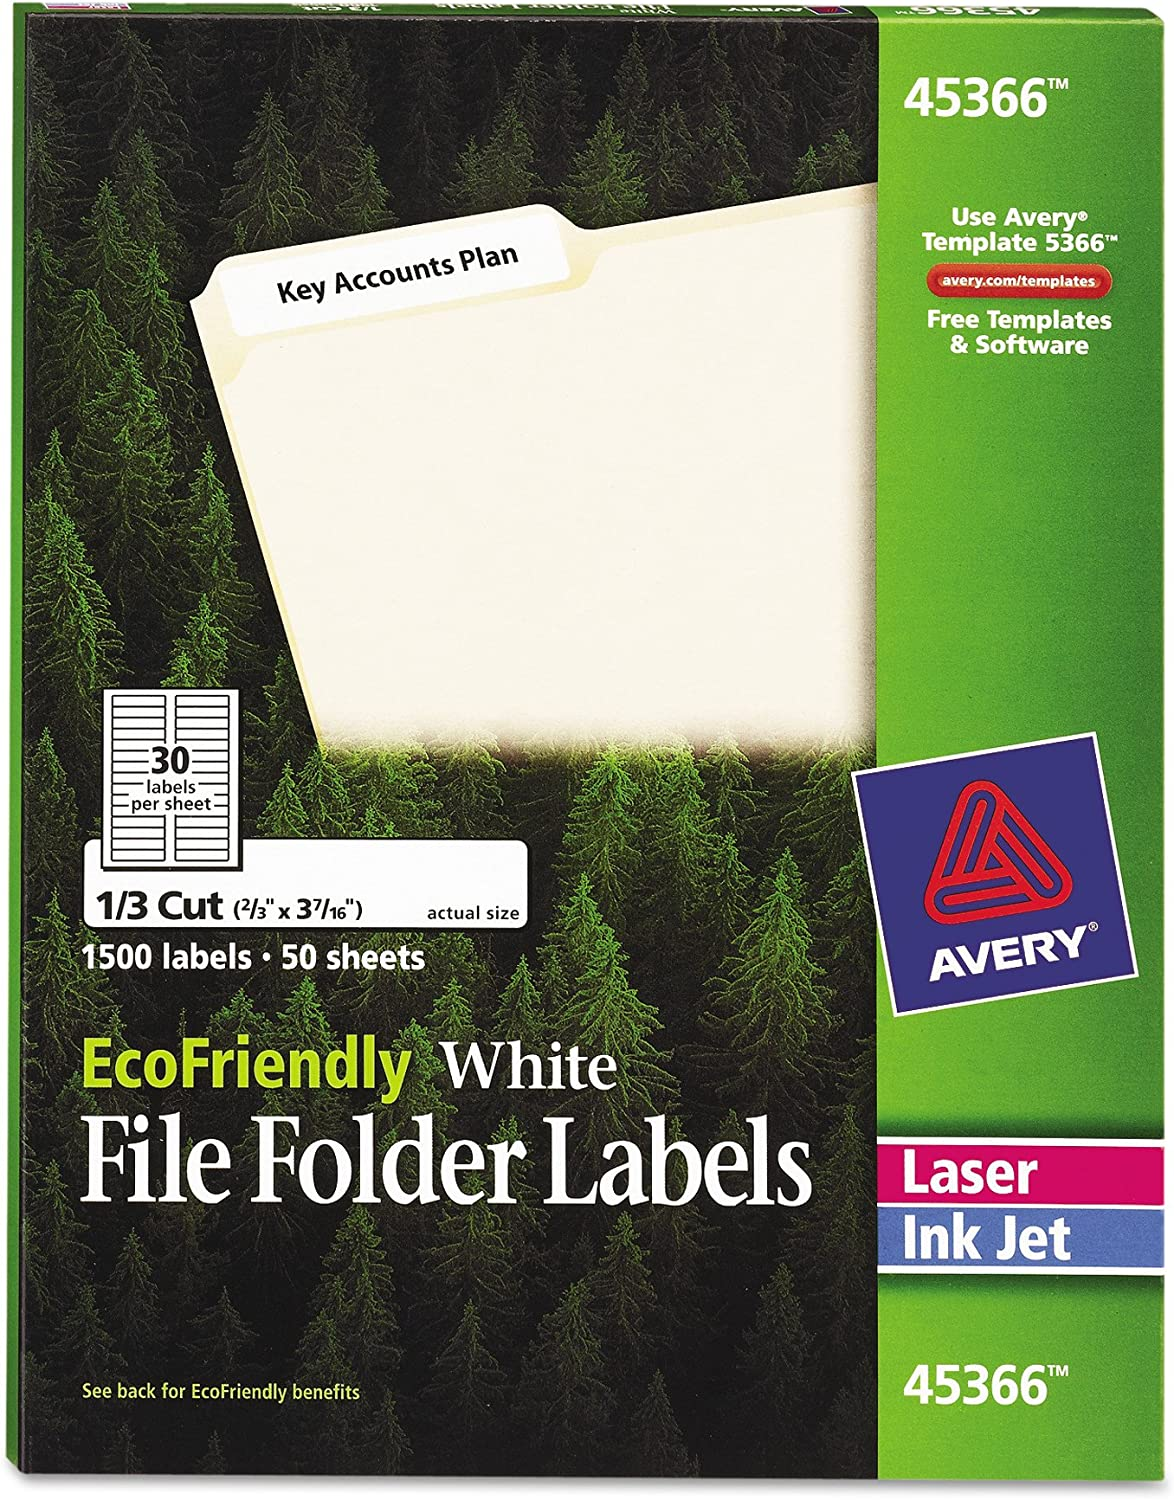 AVERY White EcoFriendly File Folder Labels, 0.66 x 3.437 Inches, Box of 1500 (45366)